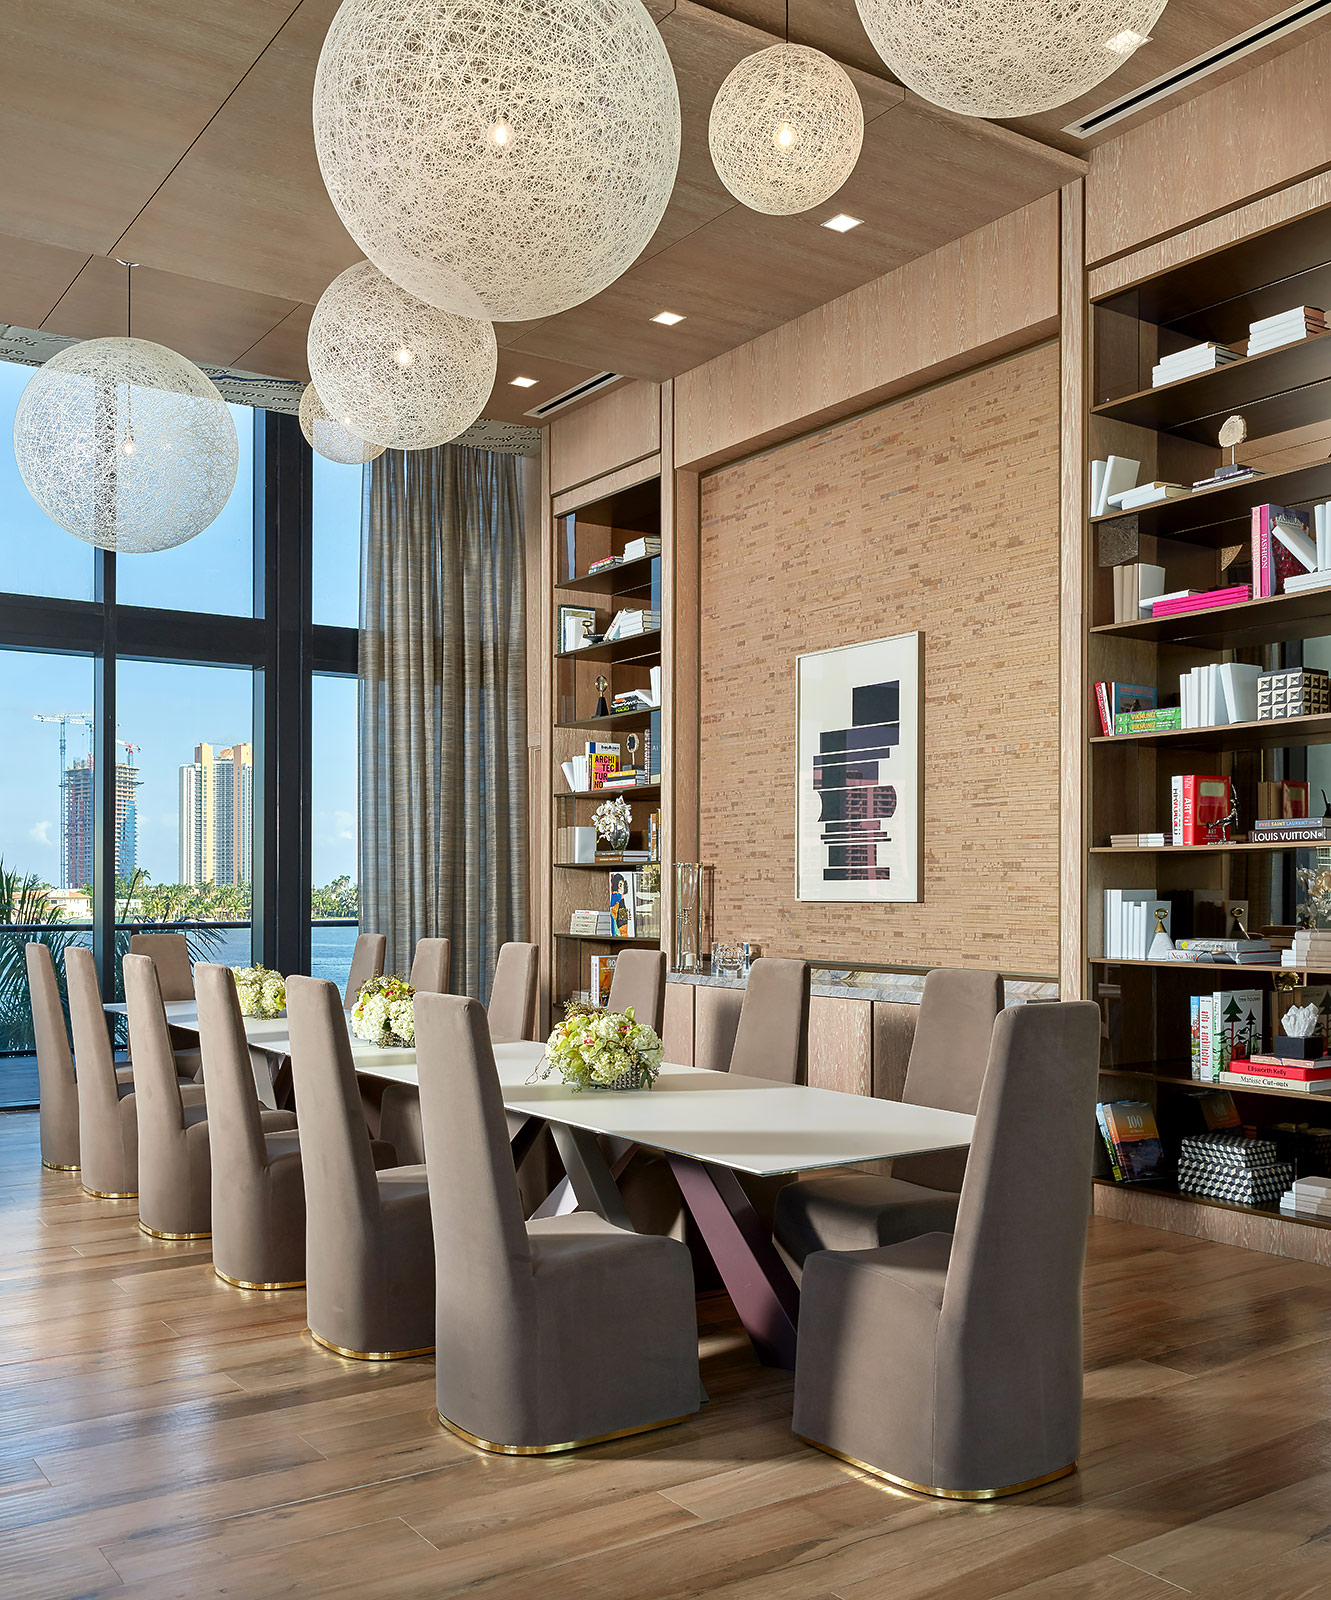 Prive-Condominium-Aventura-Florida-Library-Table